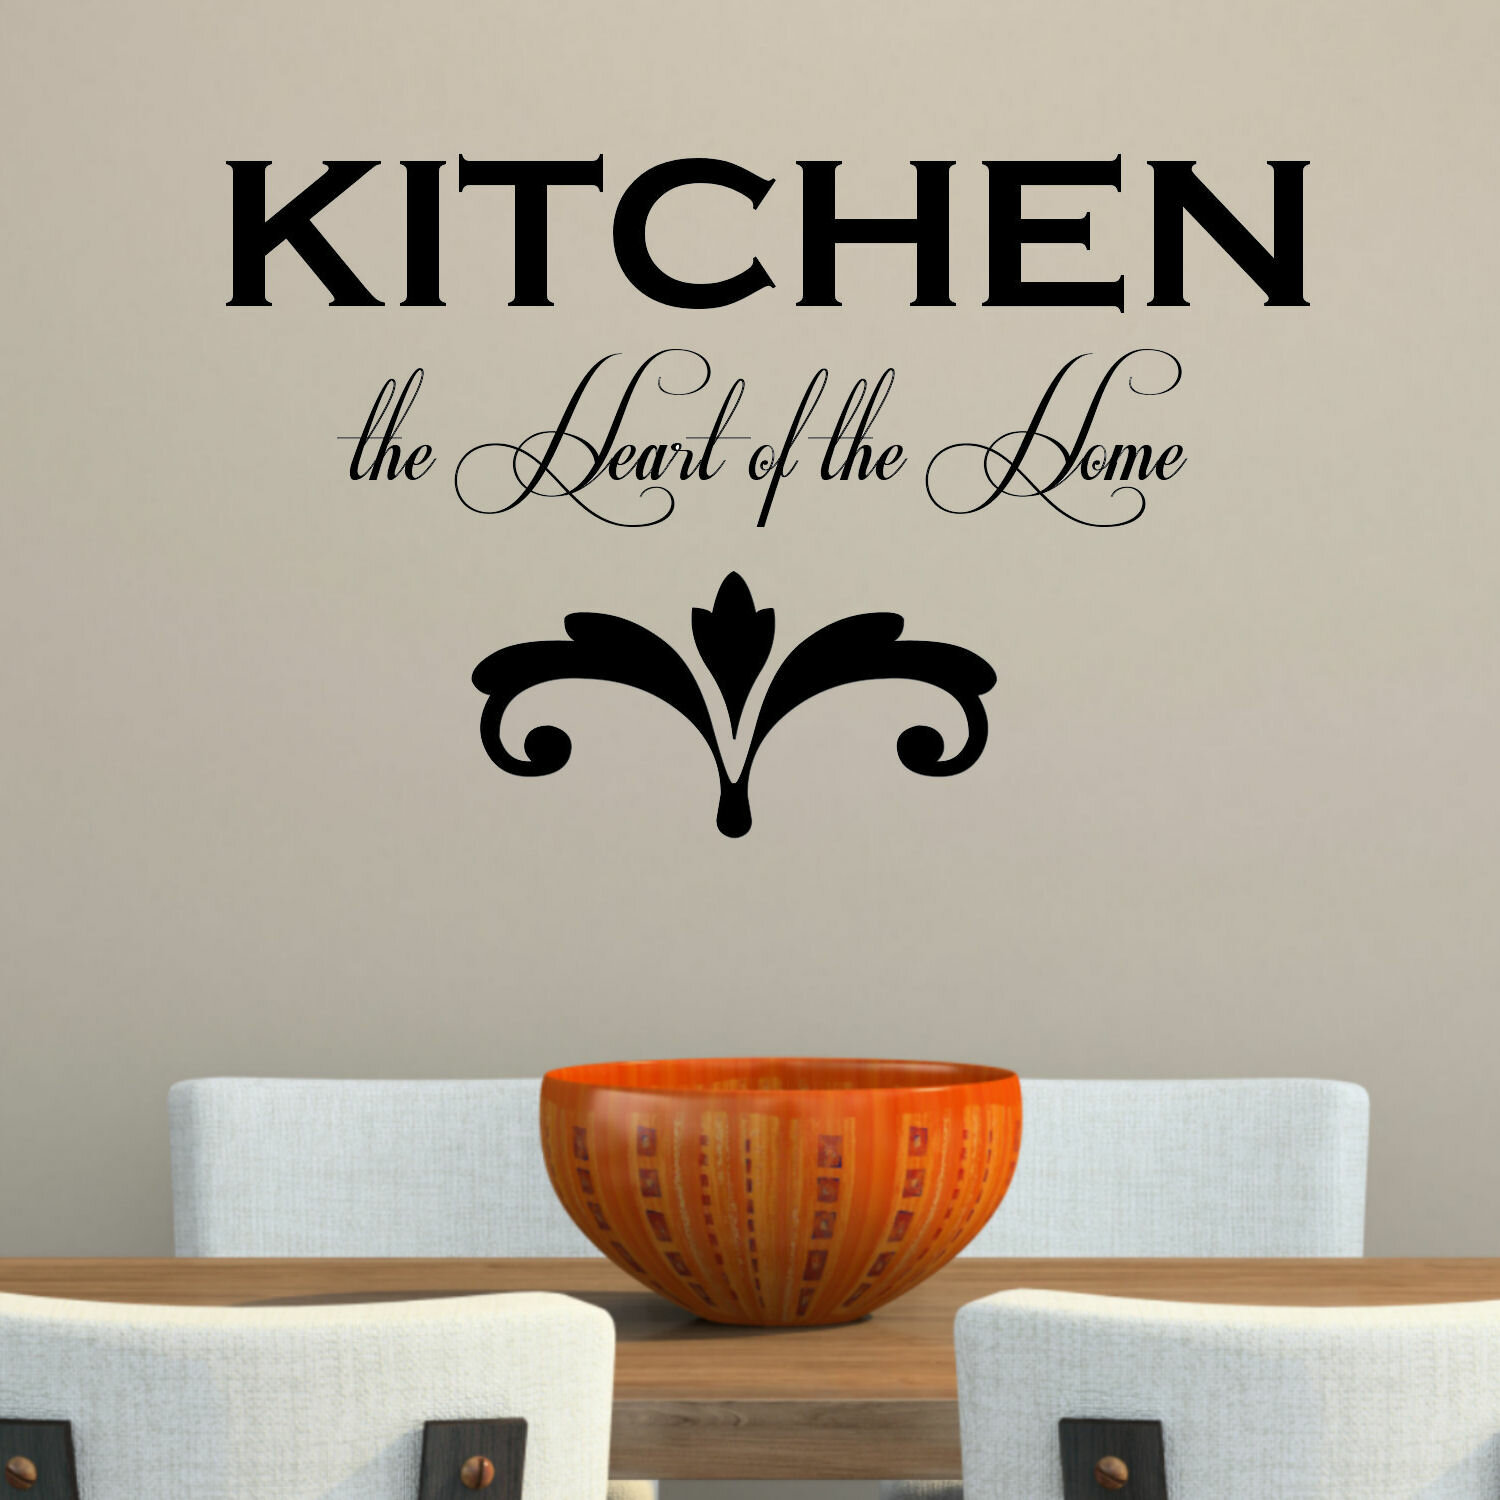 Decalthewalls Kitchen The Heart Of The Home Wall Decal Reviews